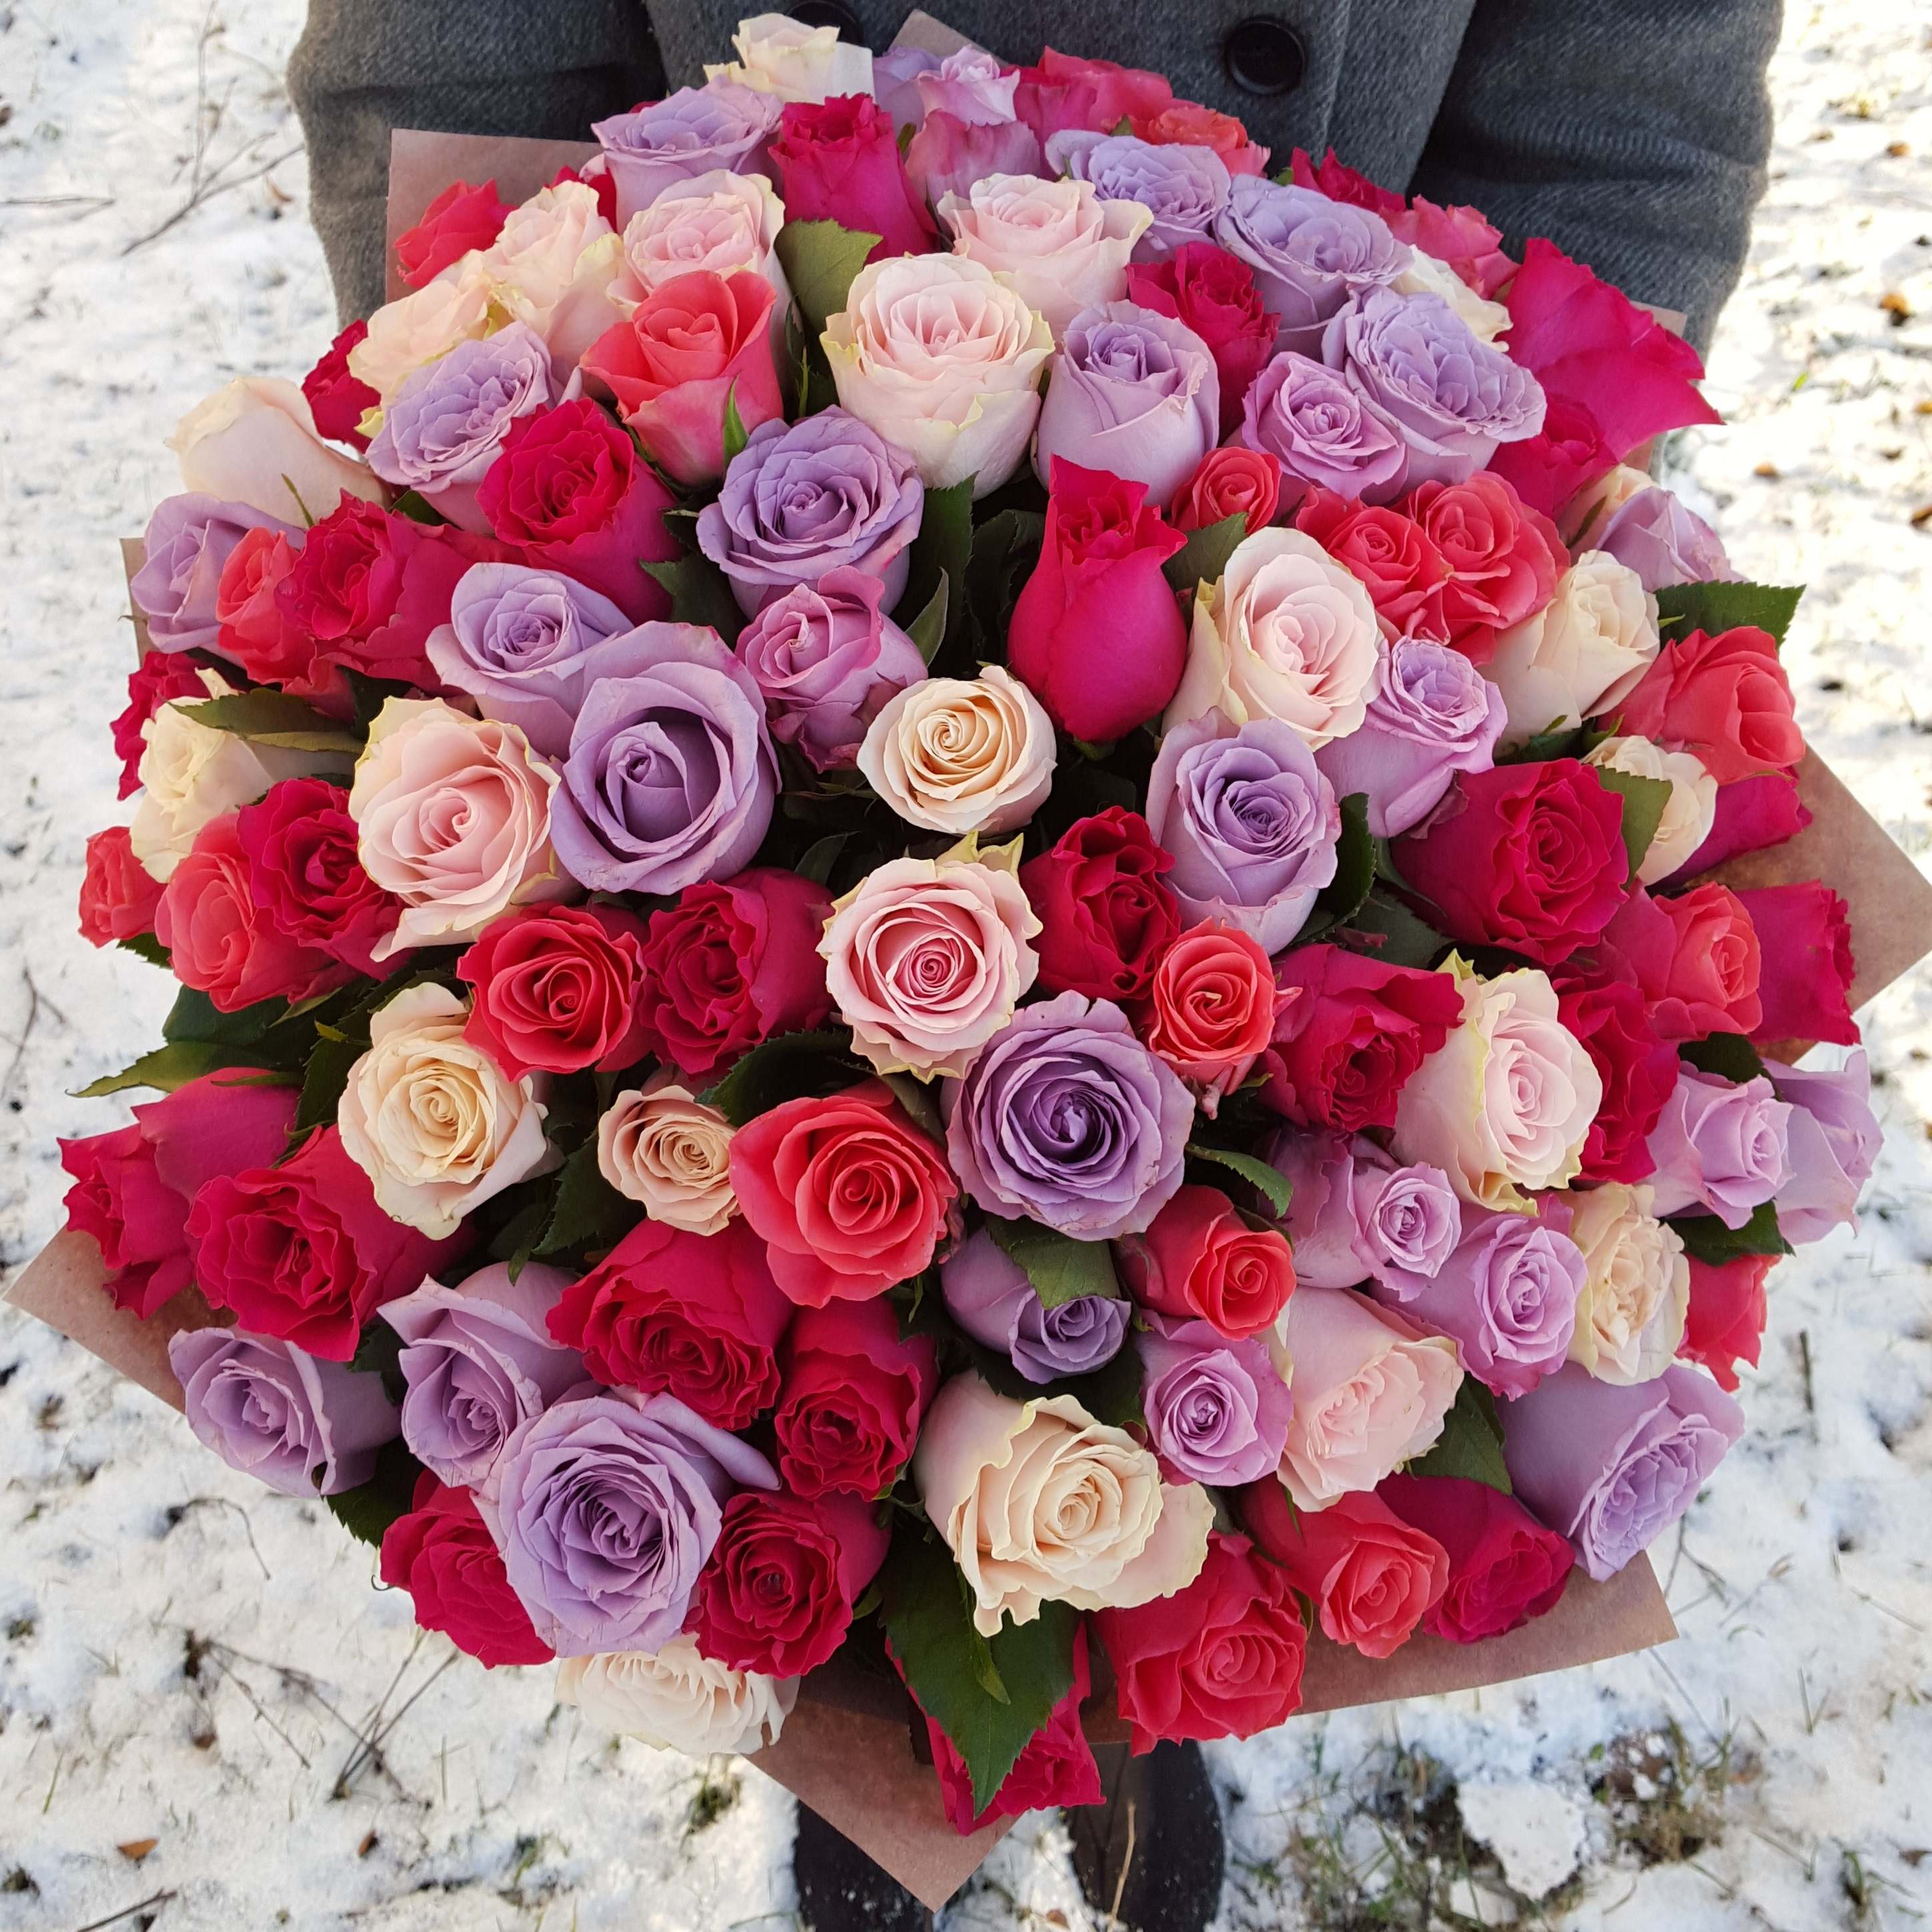 101 Roses Mix Super Cena Is The Best Bouquets With Delivery In